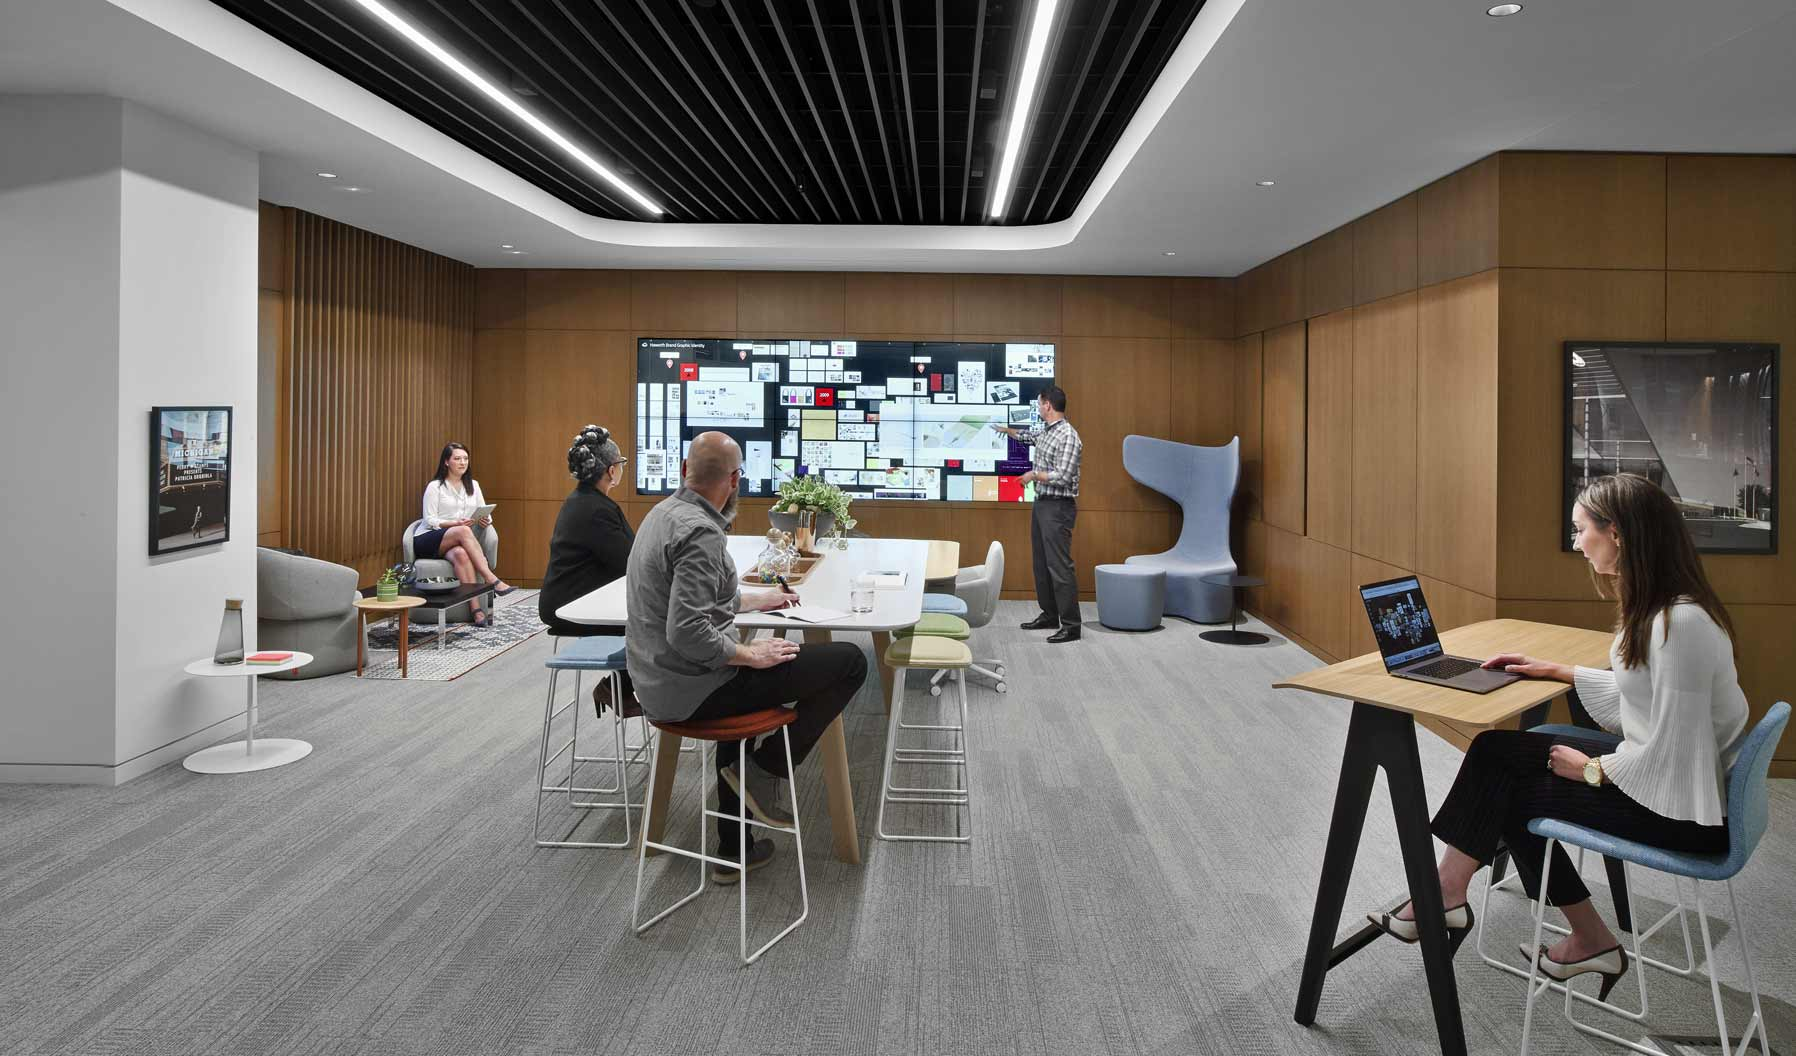 This project space is all about active collaboration and ideation. It supports a range of uses, from a traditional meeting to longer ownership by a particular team. The various furniture postures encourage users to move throughout the space and collaborate and engage with the large Bluescape screen.